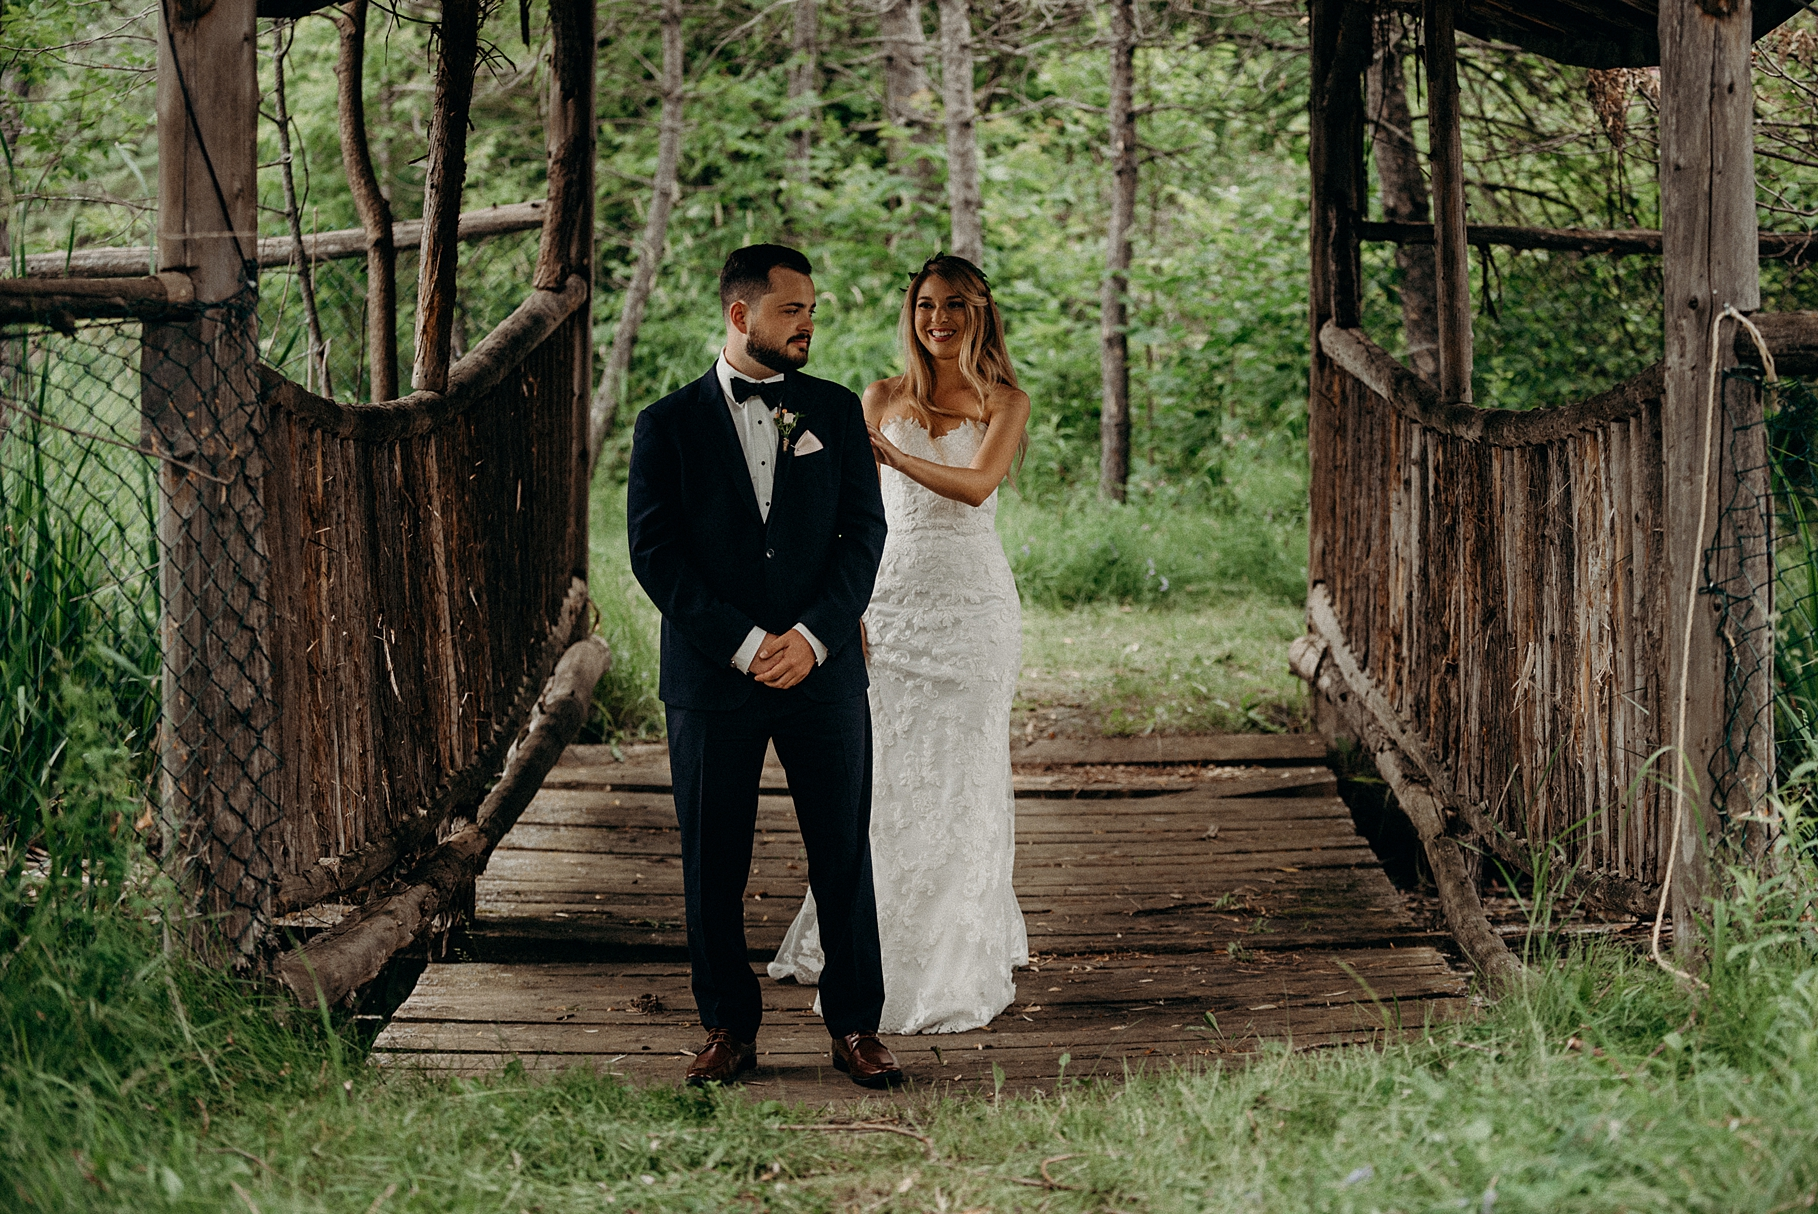 Saunders Farm Wedding Mocha Tree Studios Ottawa Toronto Montreal Wedding and Engagement Photographer and Videographer Dark Moody Intimate Authentic Modern Romantic Cinematic Best Candid First Look 22